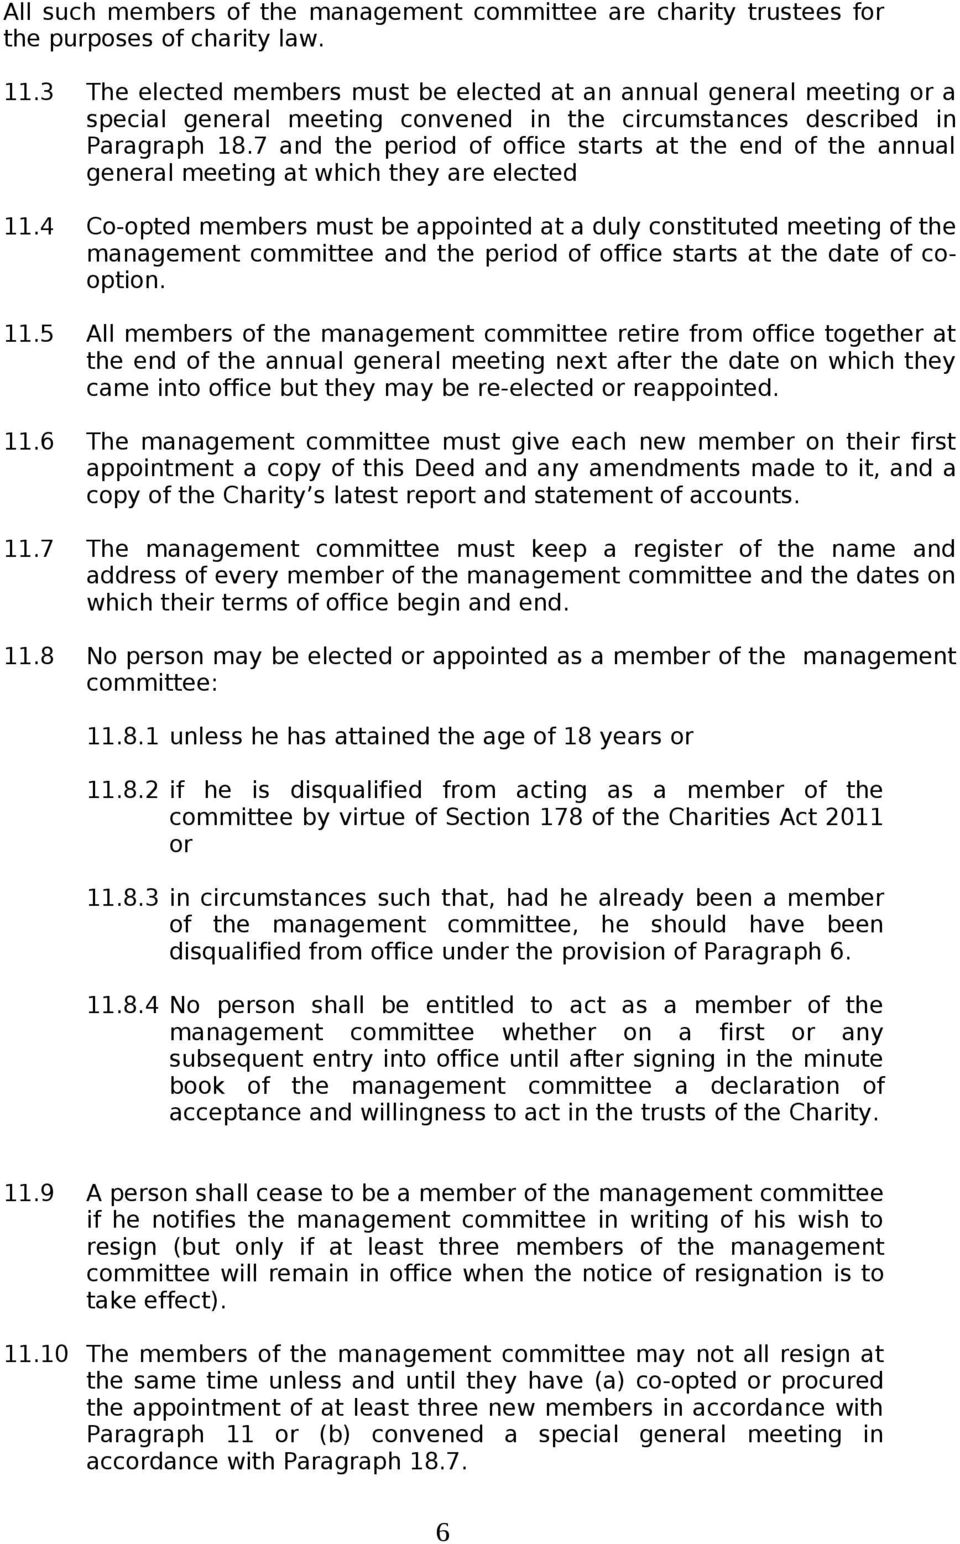 7 and the period of office starts at the end of the annual general meeting at which they are elected 11.